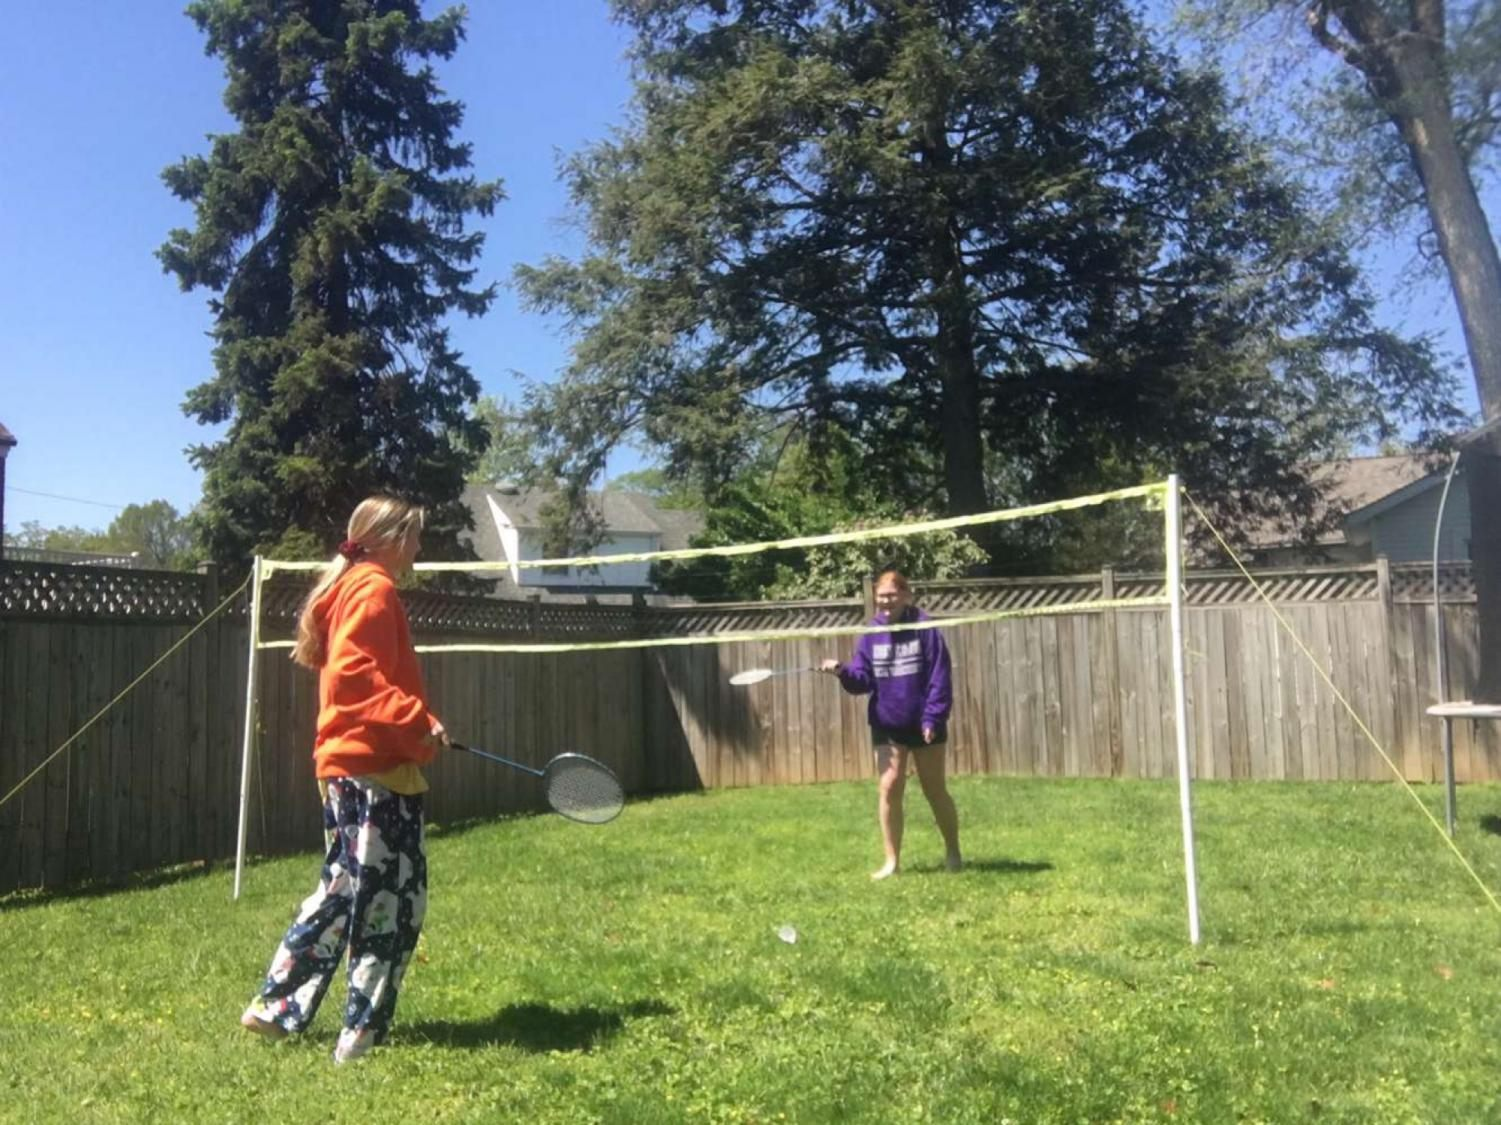 Sophomore, Kelsey Lawson and junior sister Allie playing a fun game of badminton in their backyard.